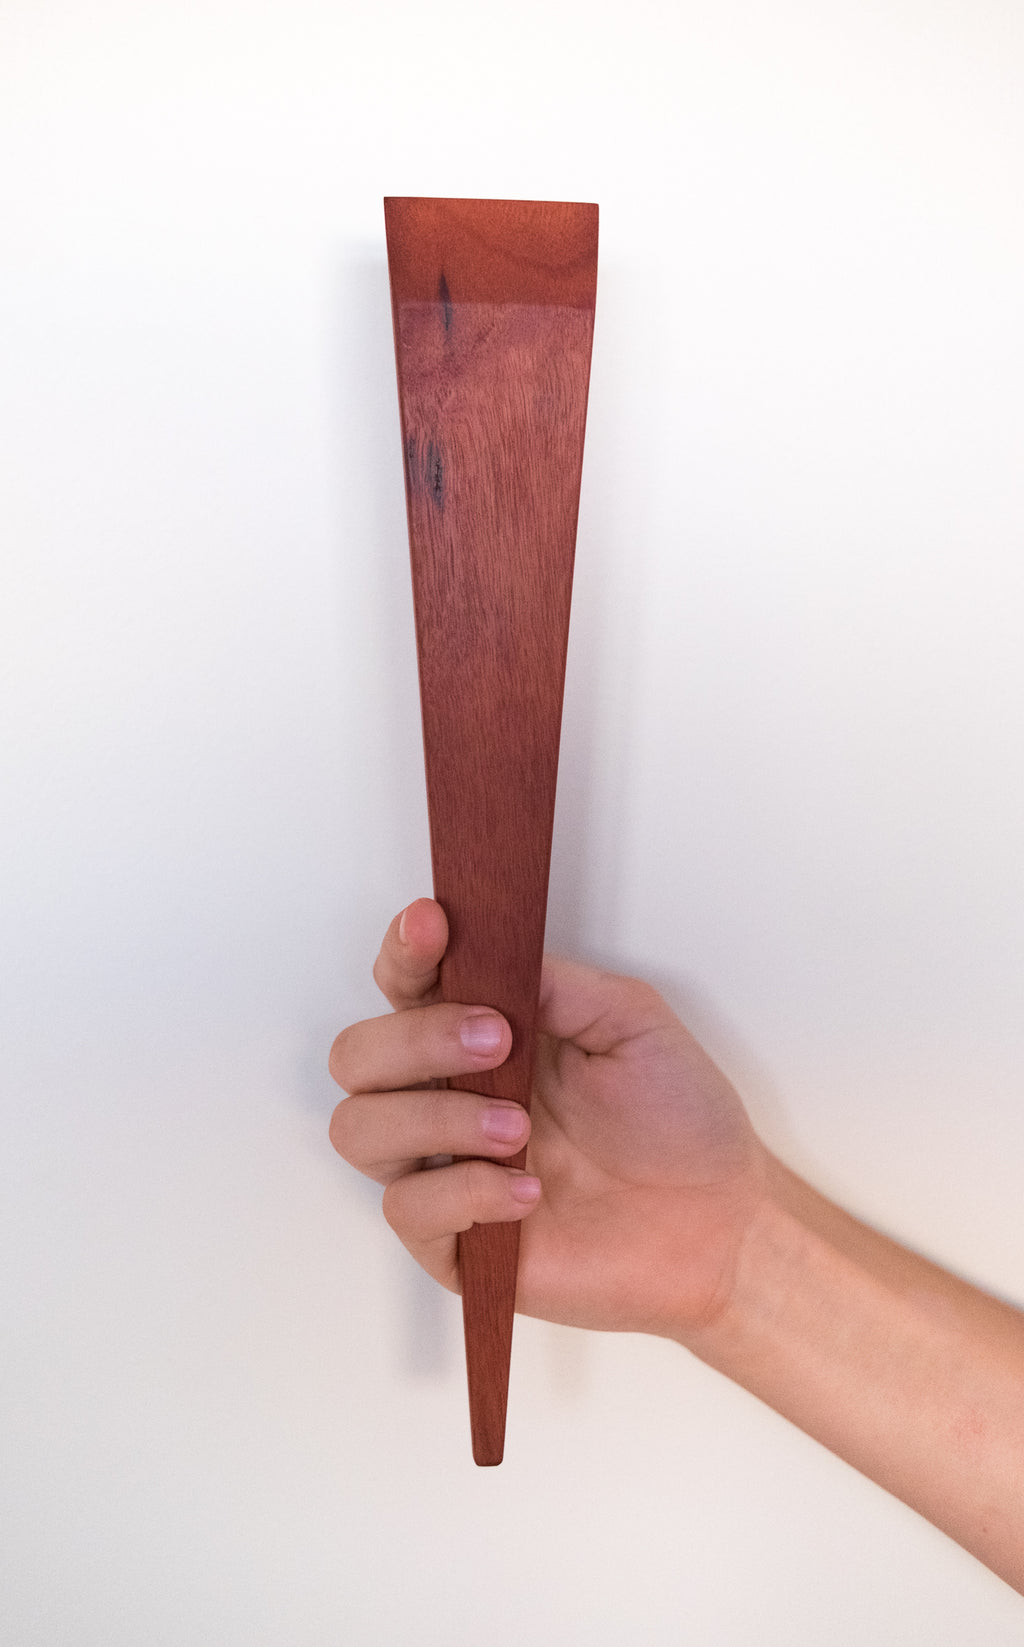 The Wedge Spatula